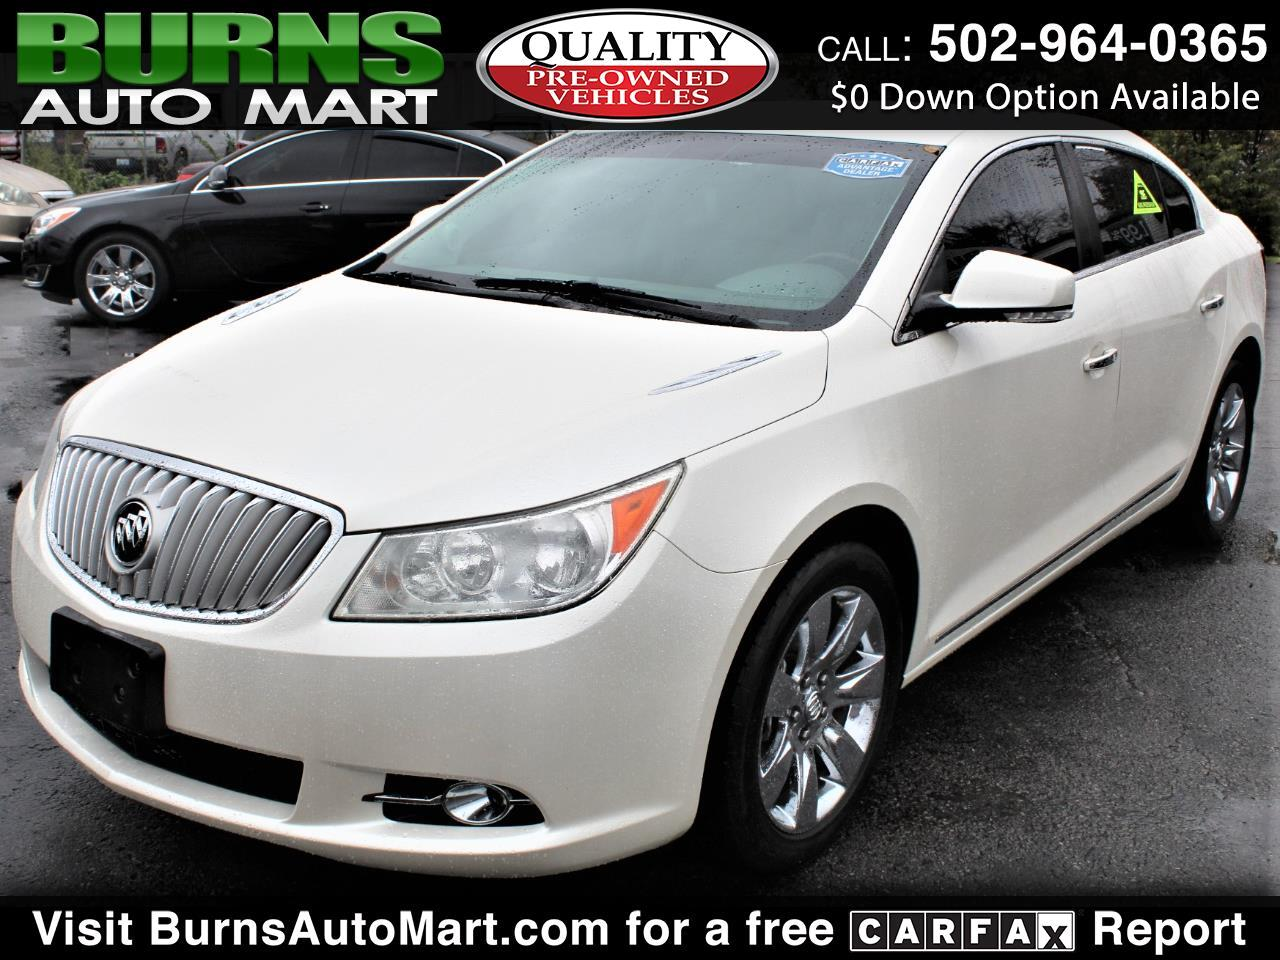 Buick LaCrosse Premium Package 1, w/Leather 2011